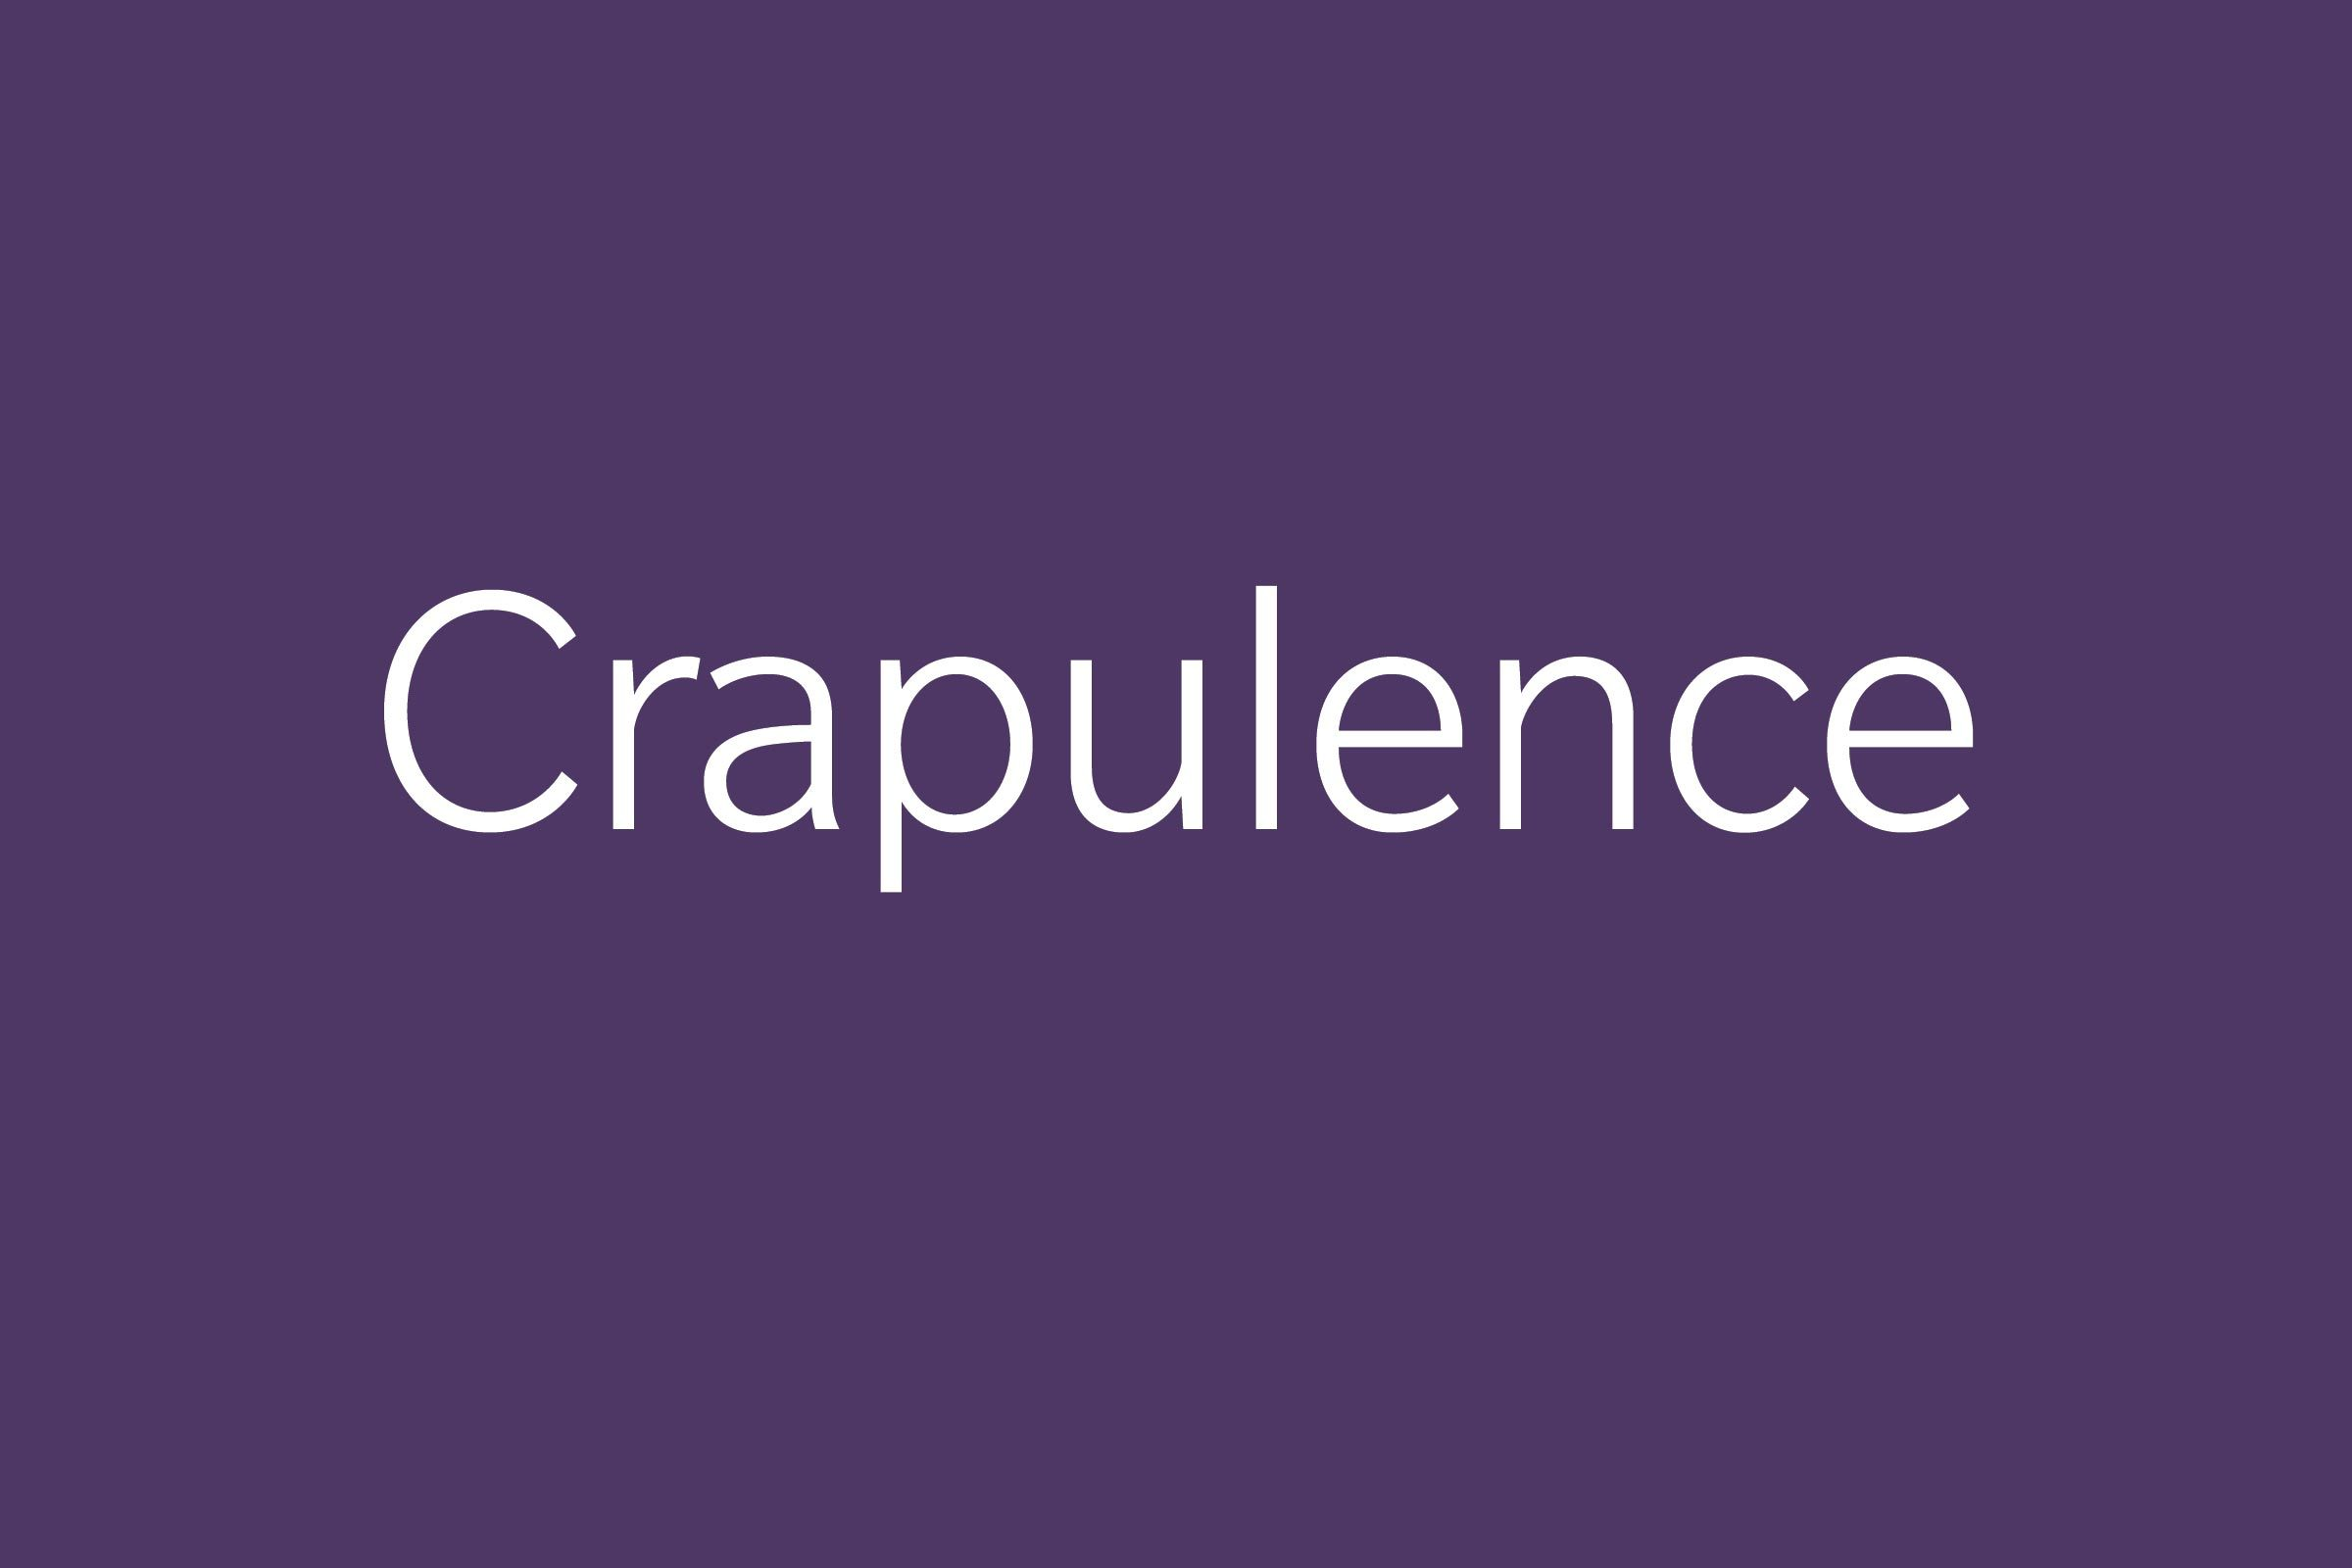 crapulence funny word funny words to say